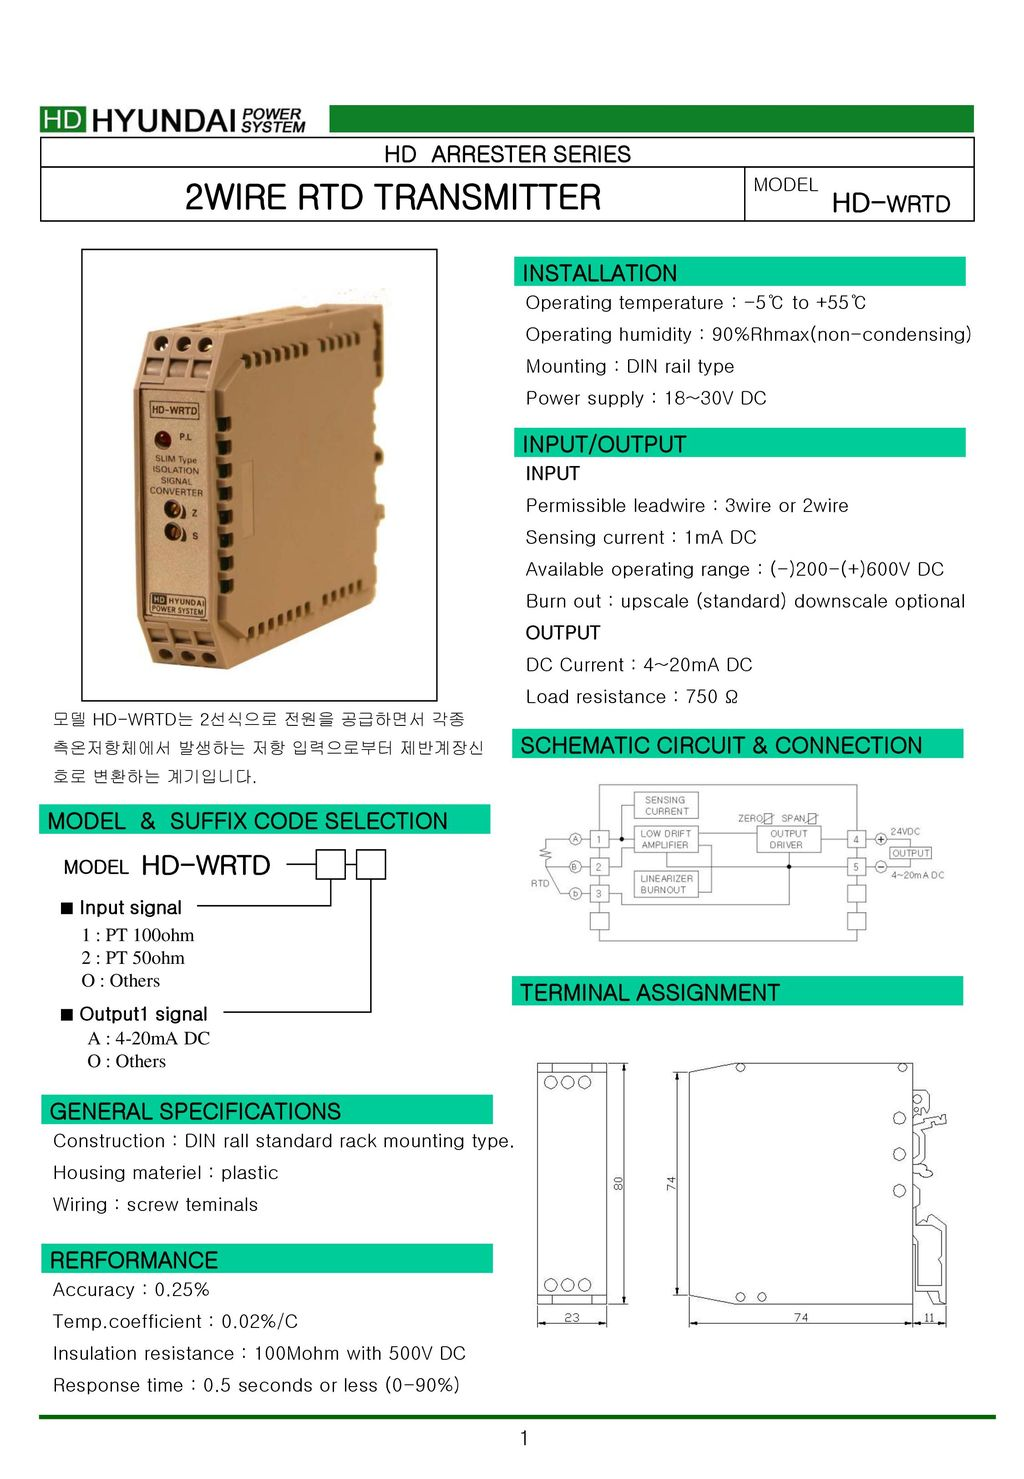 hight resolution of 2wire rtd transmitter hd wrtd hd wrtd hd arrester series installation